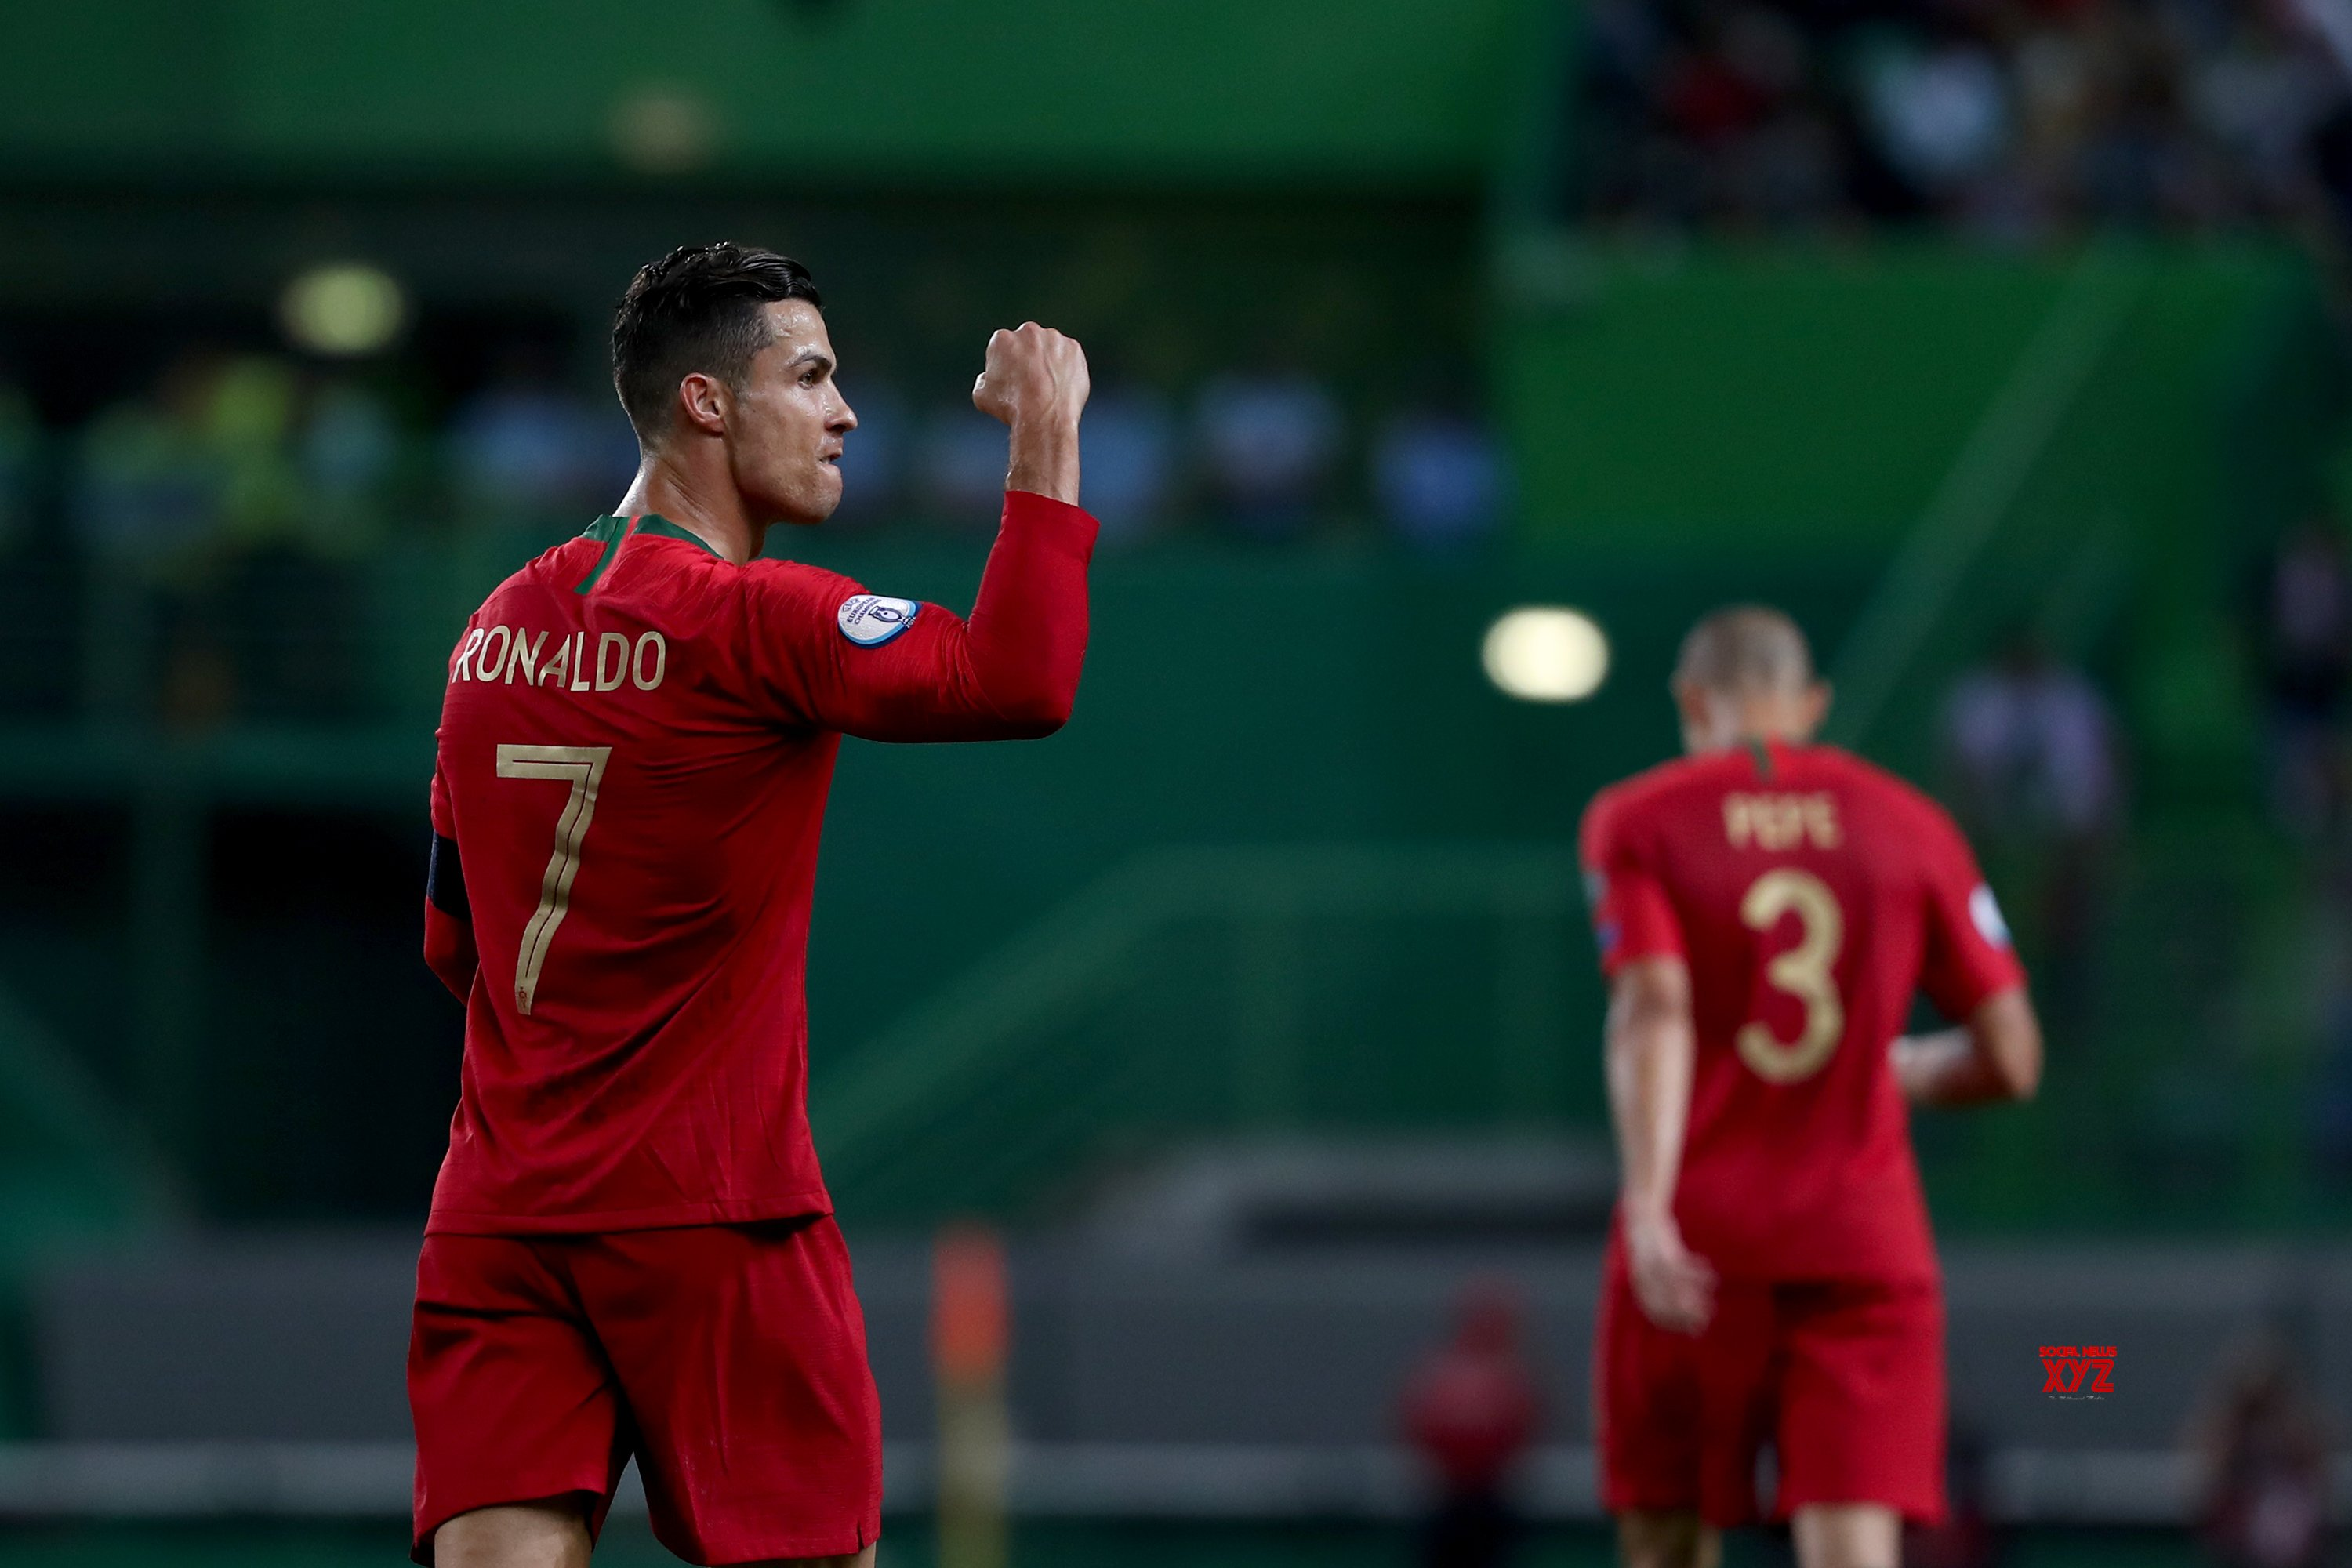 PORTUGAL - LISBON - SOCCER - UEFA EURO 2020 QUALIFYING MATCH - POR VS LUX #Gallery